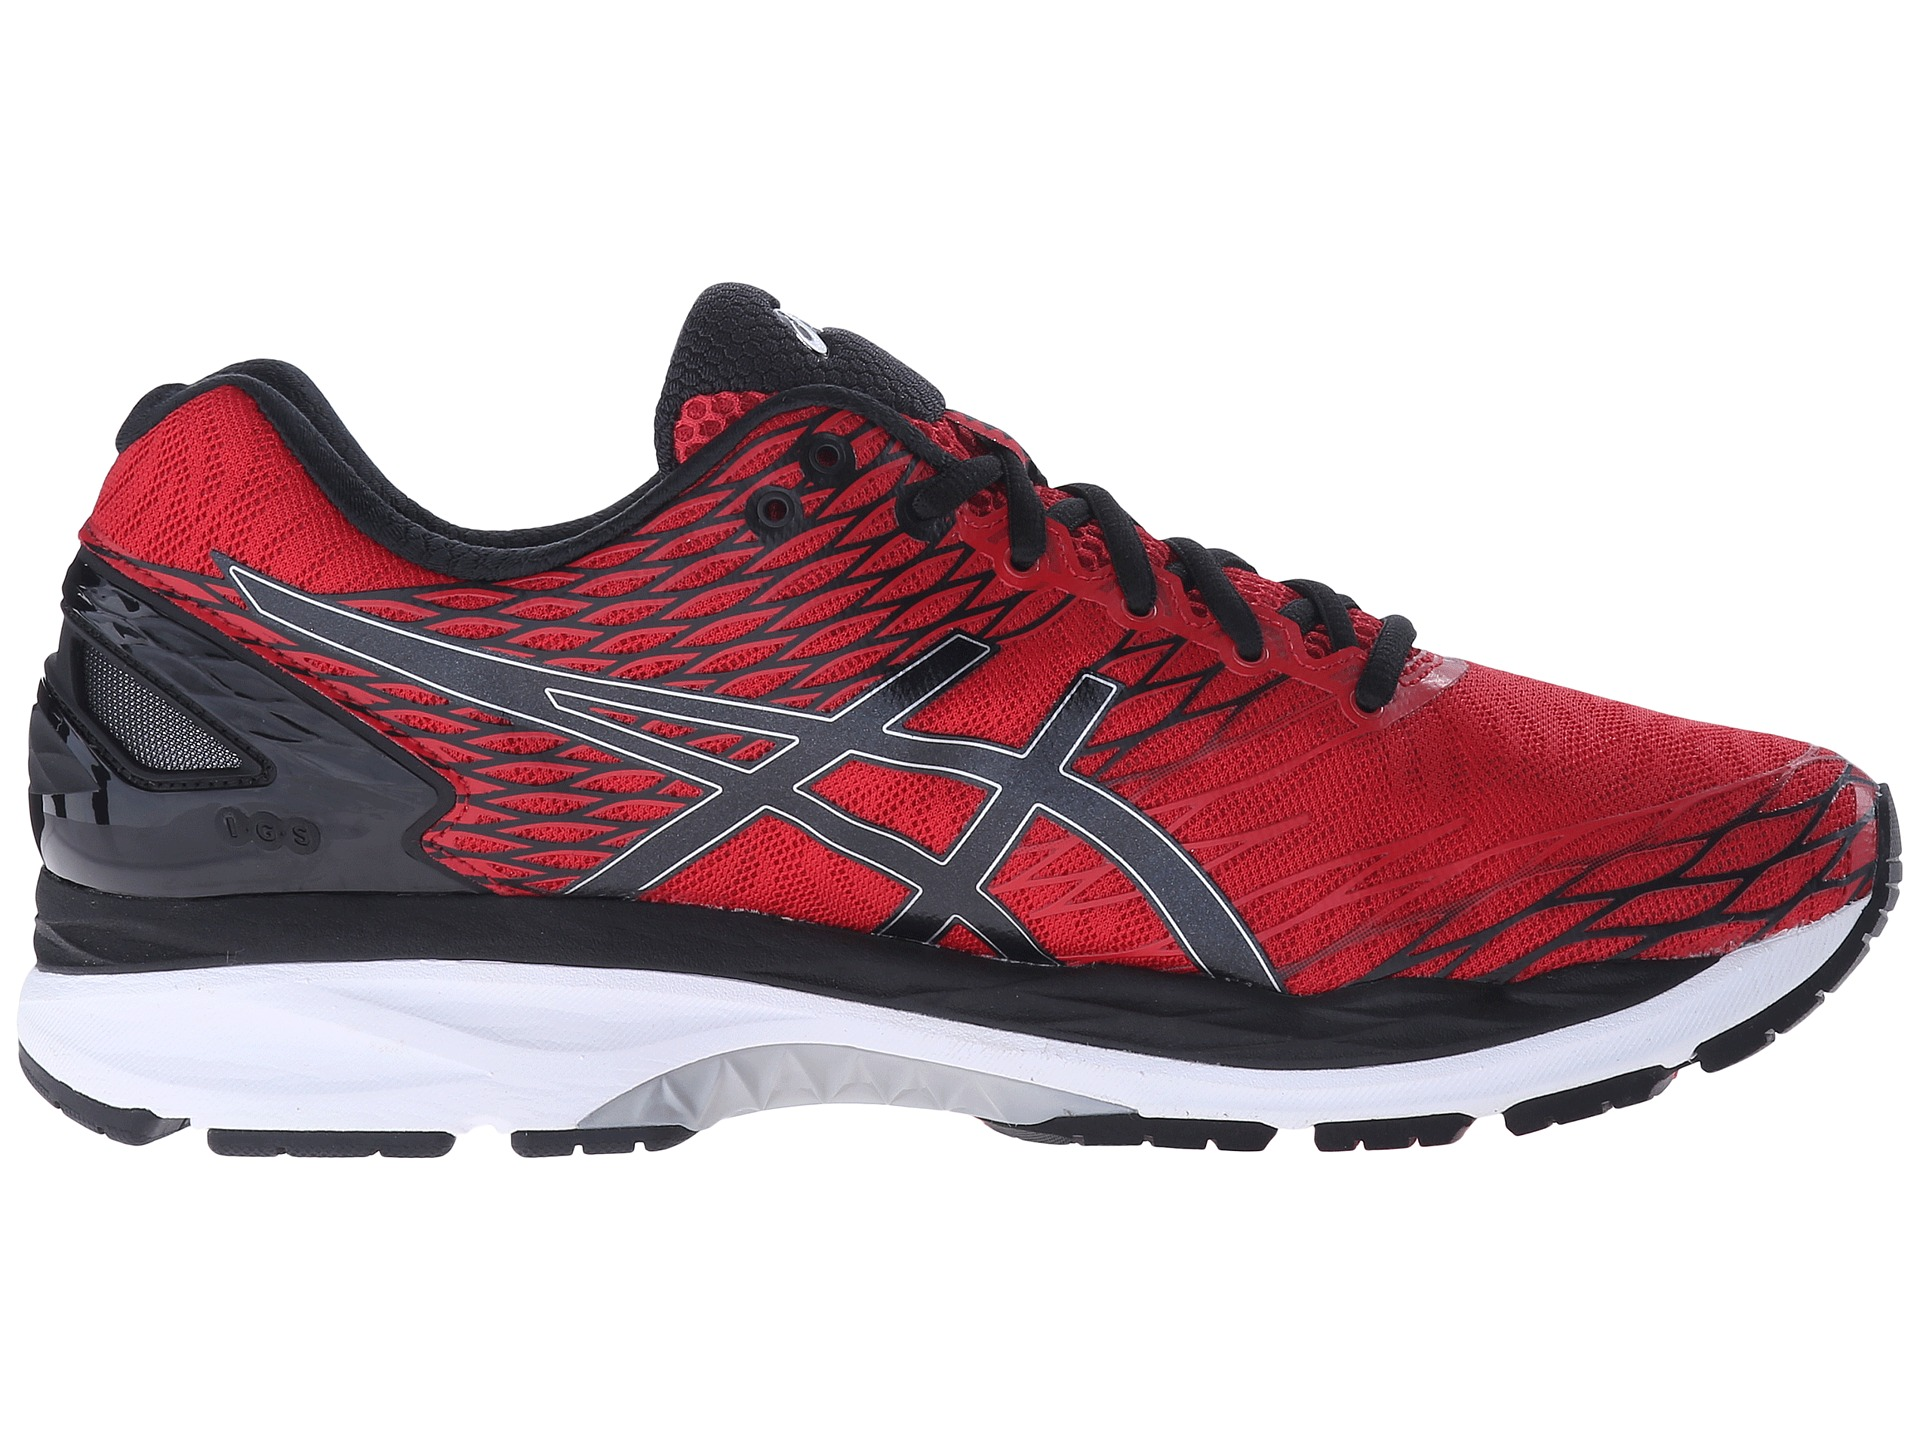 asics gel nimbus 18 racing red black silver